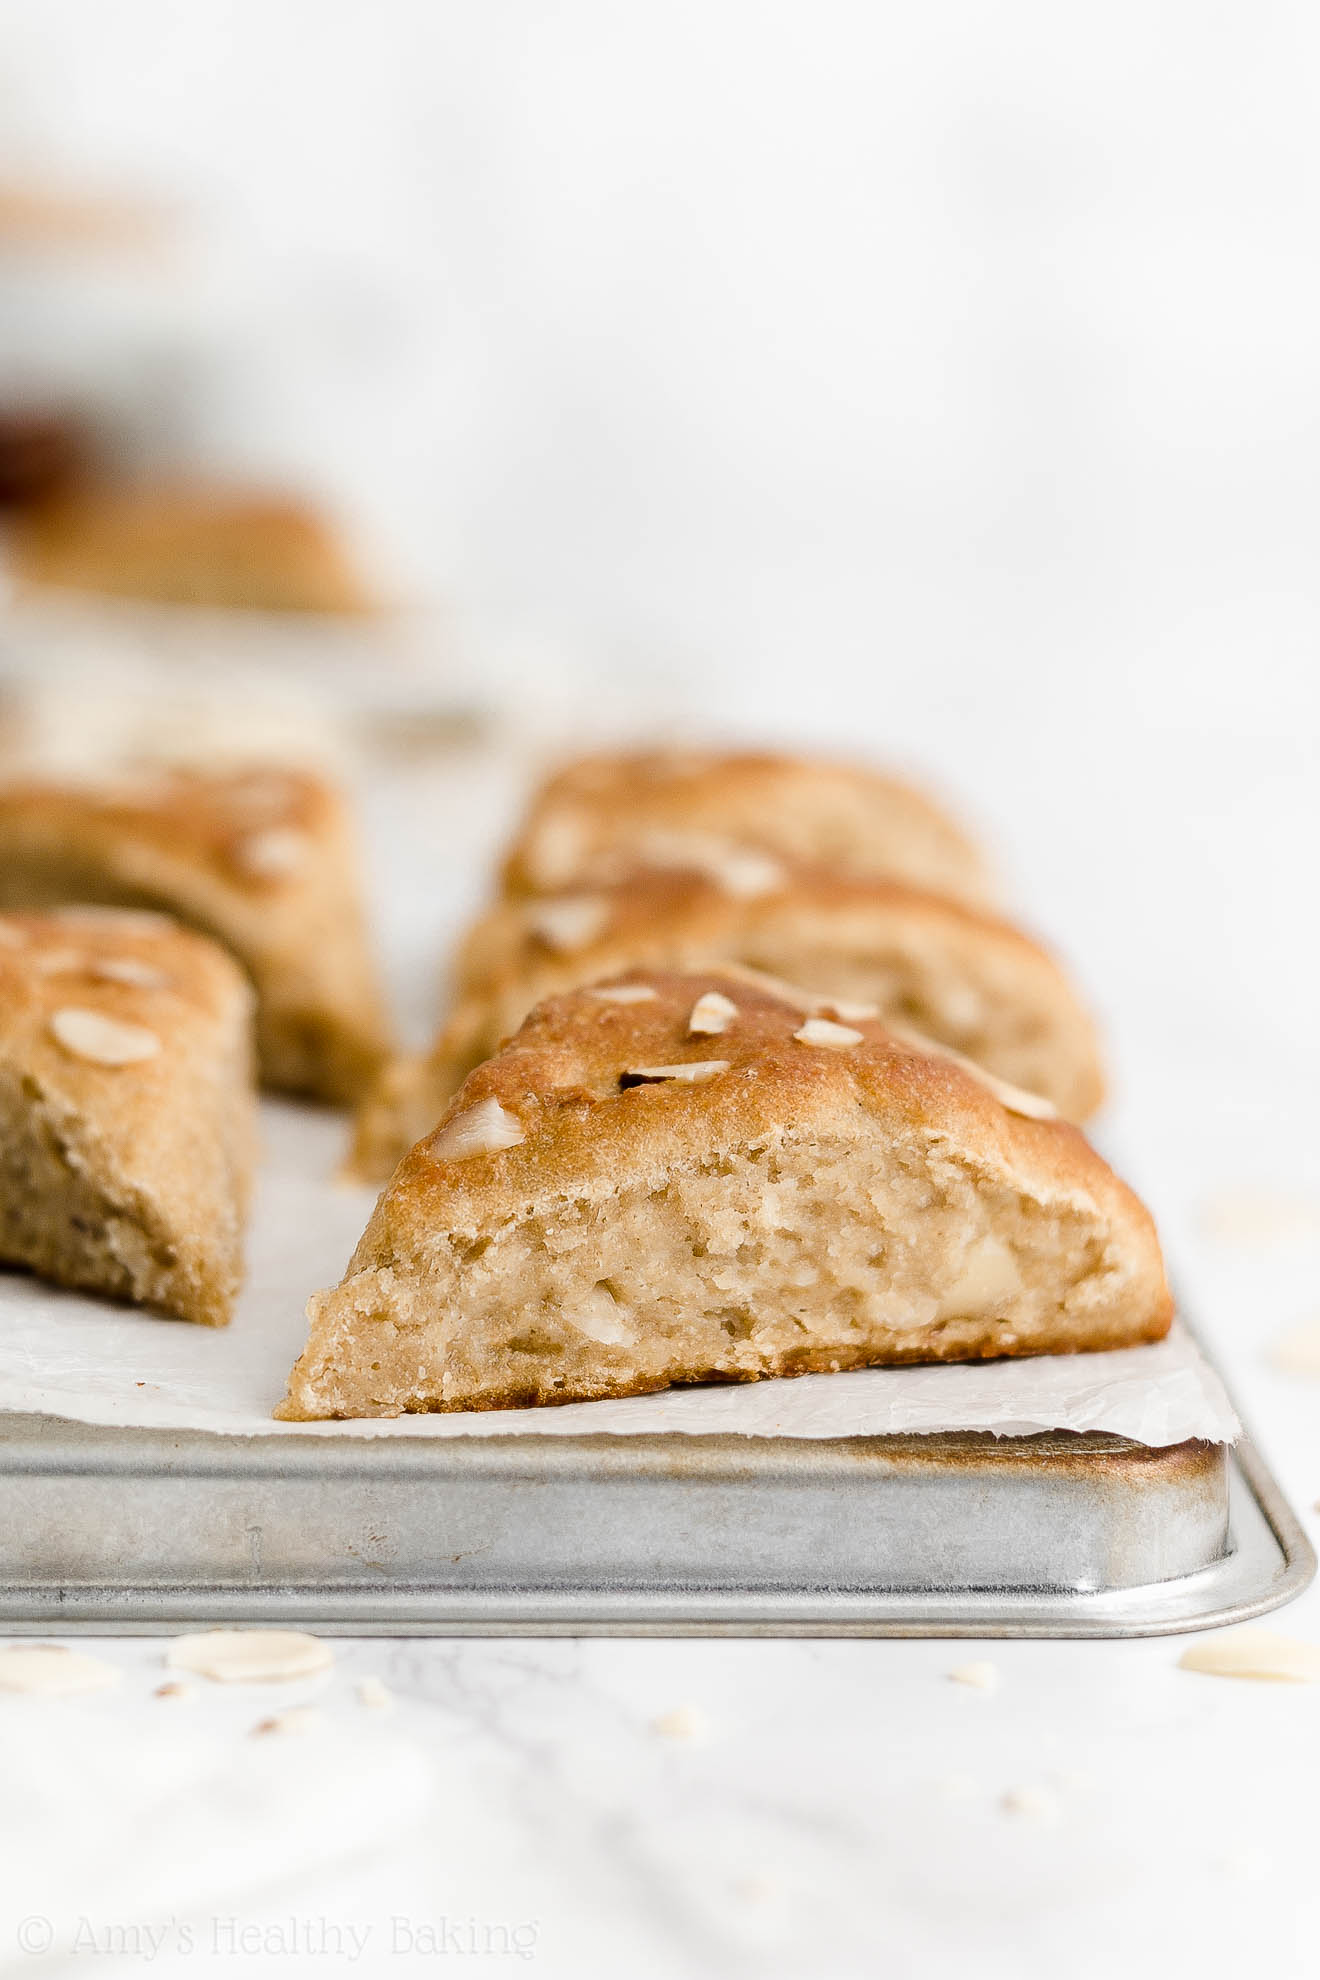 Best Easy Healthy Homemade Low Calorie Gluten Free Vegan Almond Scones